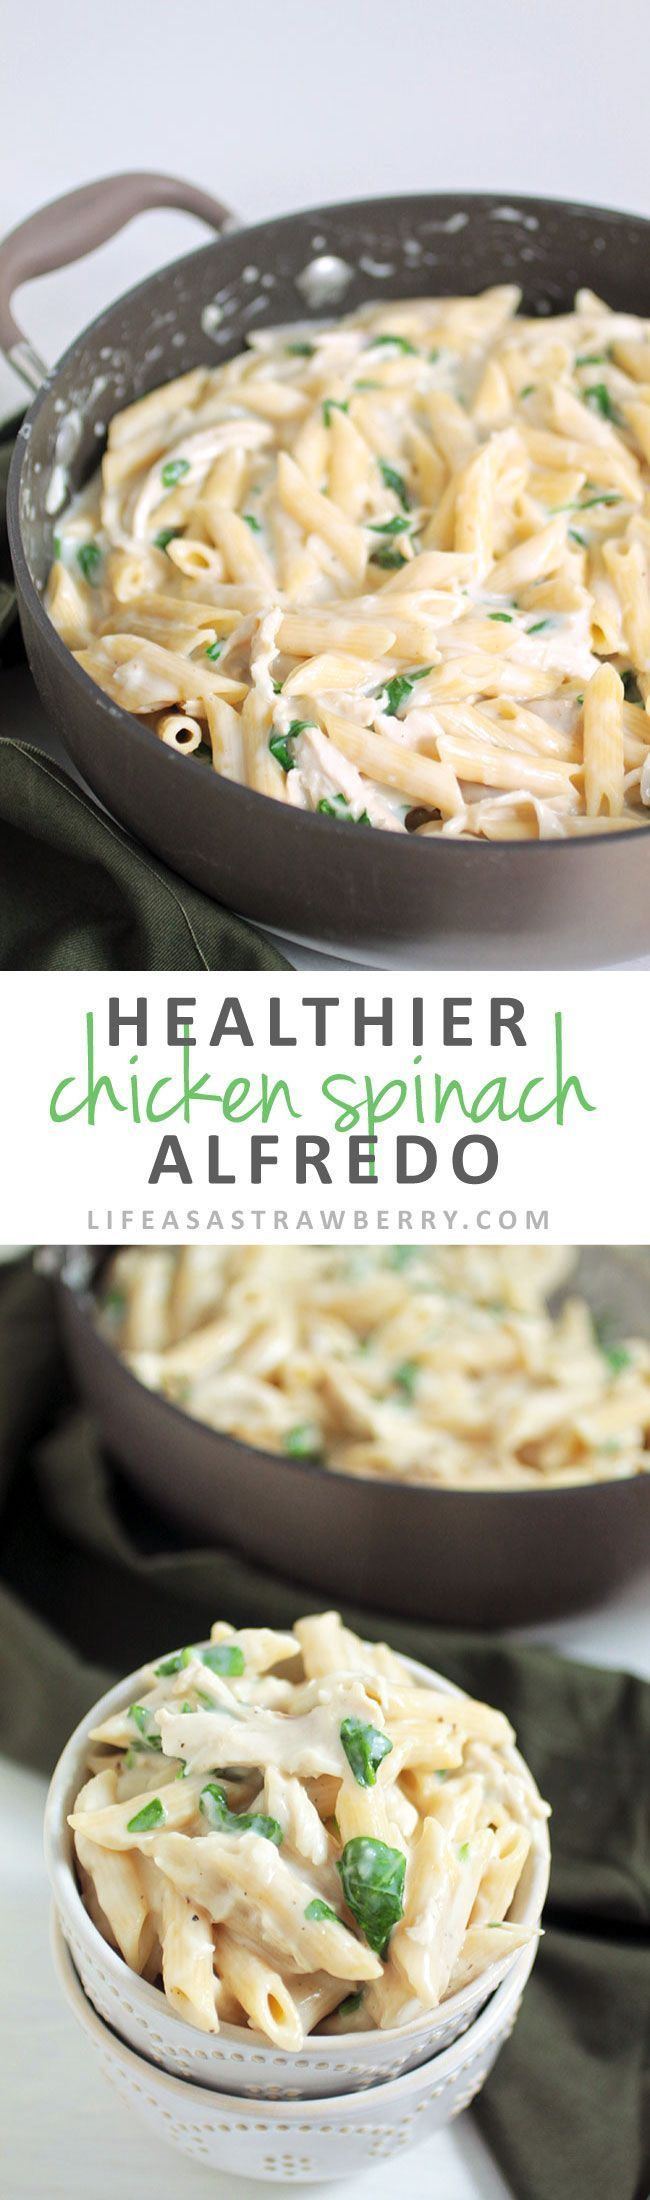 Healthier 30 Minute Chicken Spinach Alfredo  – Recipes for Moms of Boys